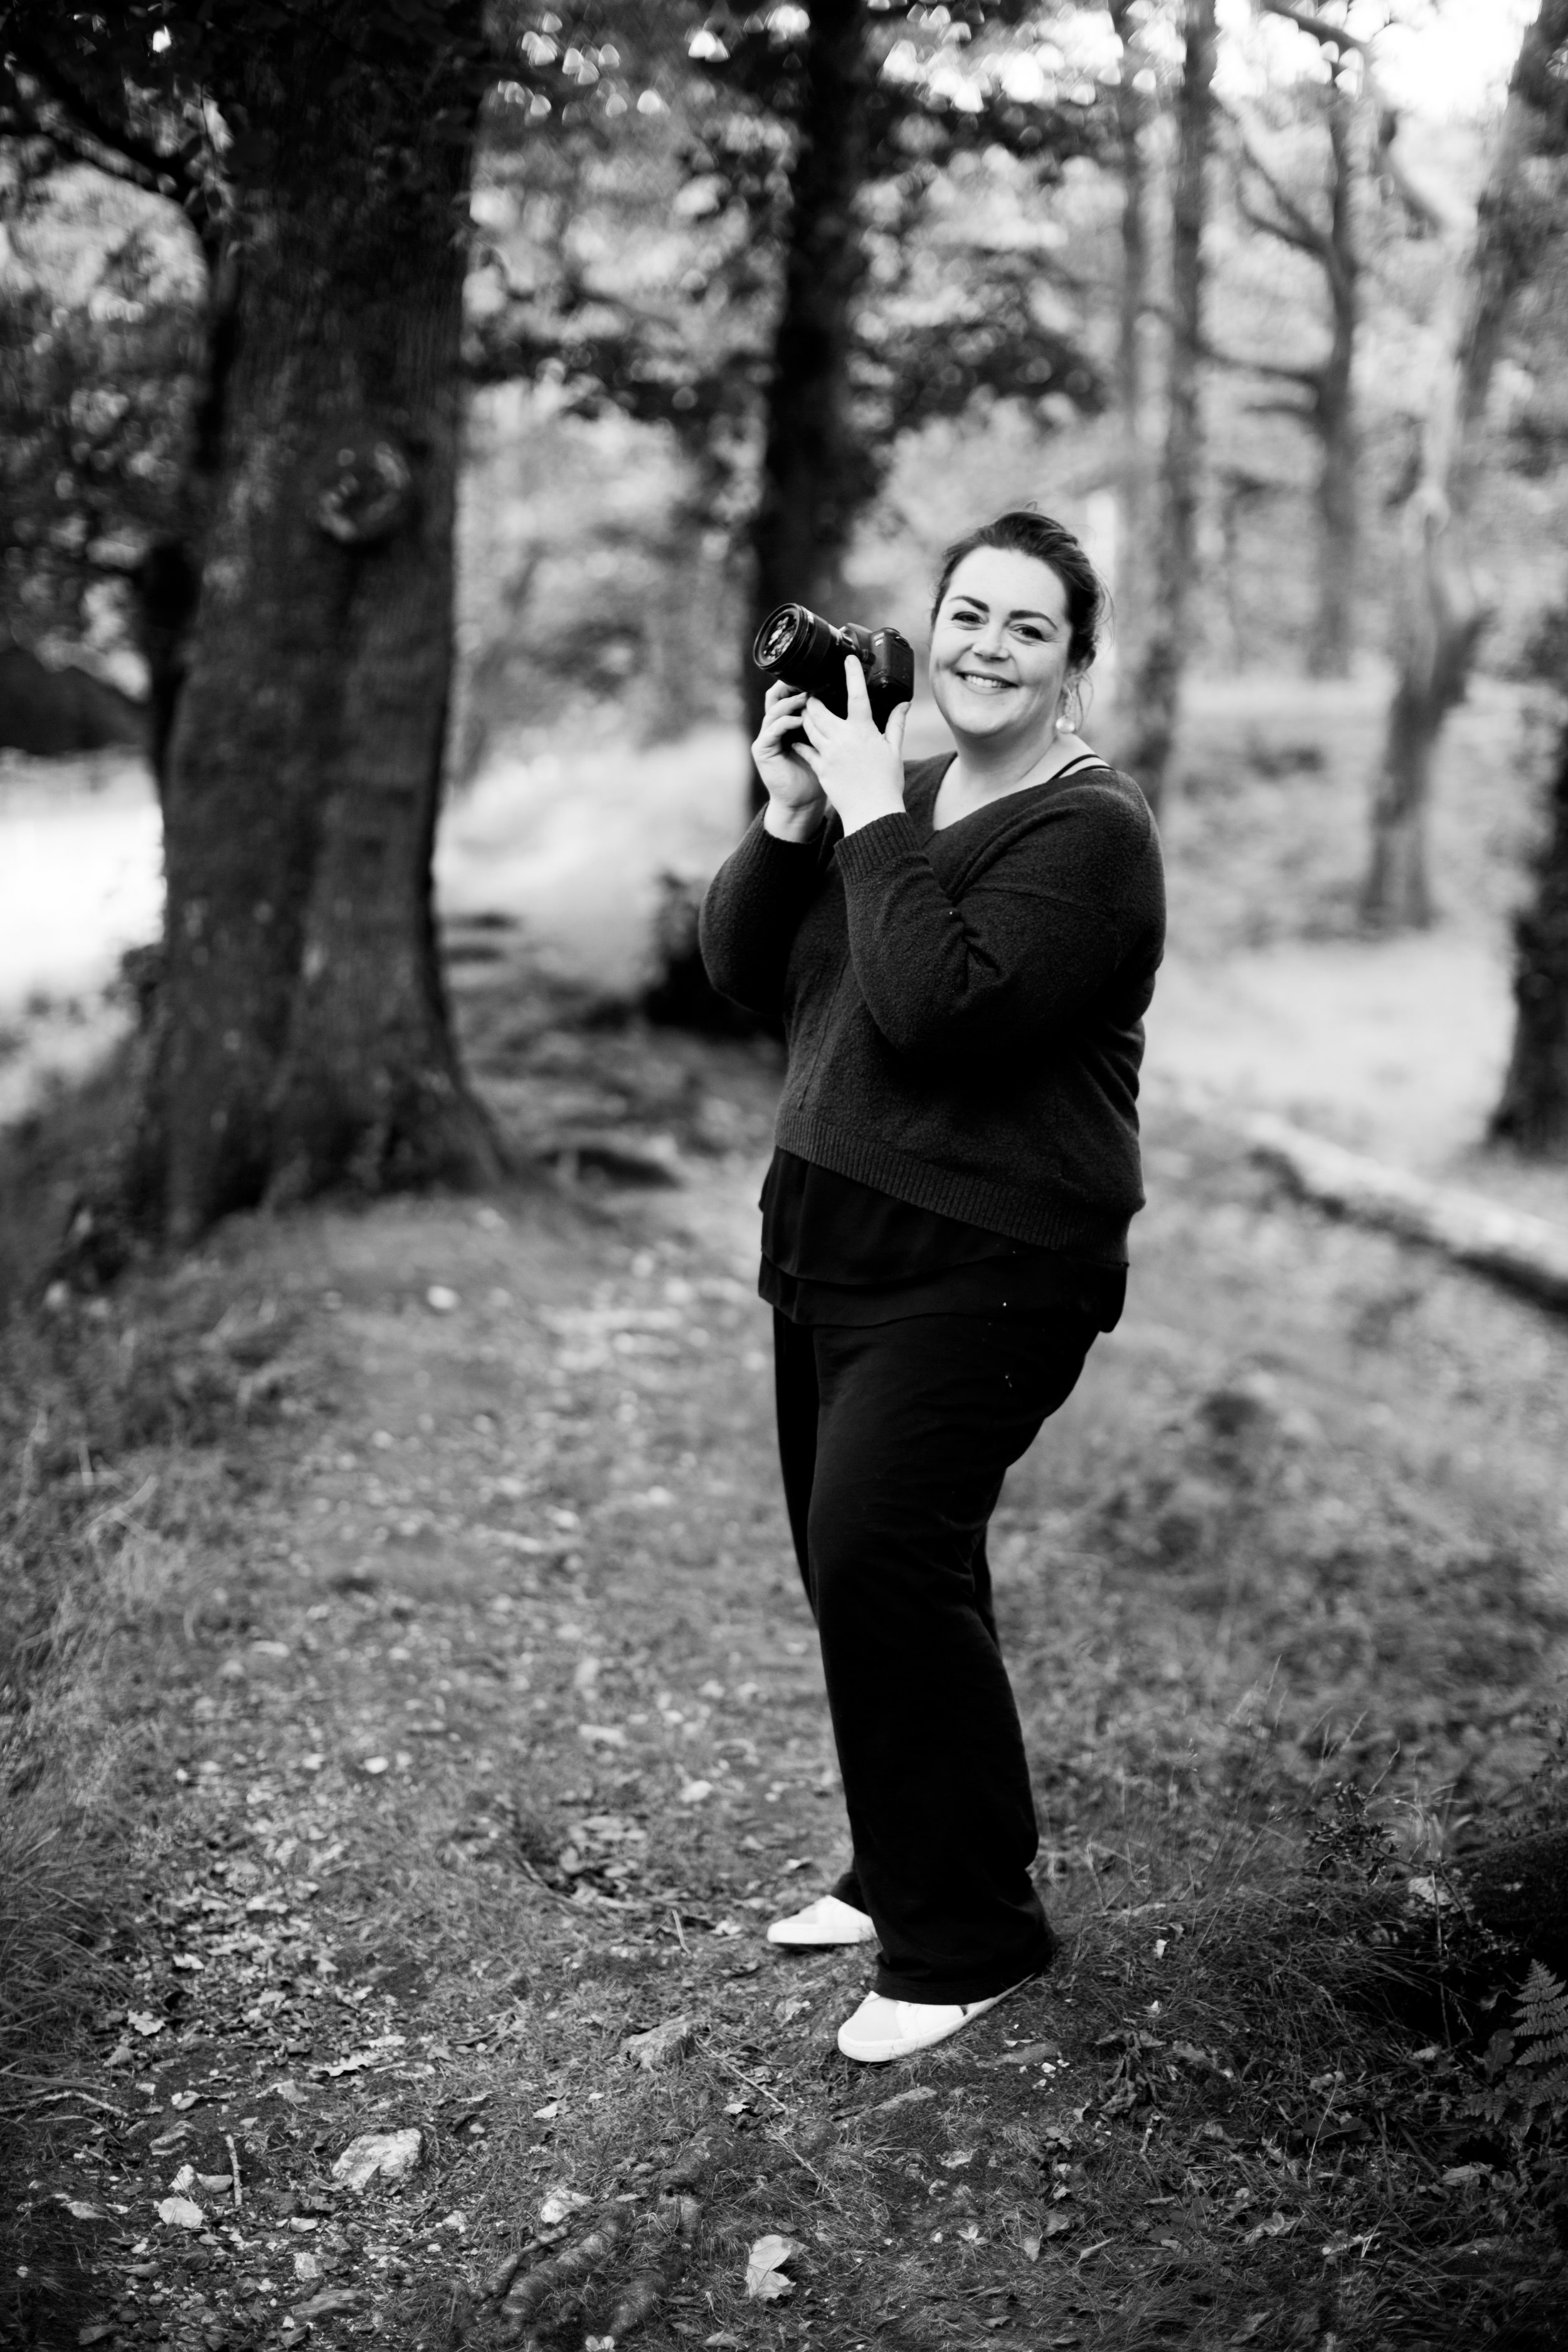 Rosie Parsons Photography courses